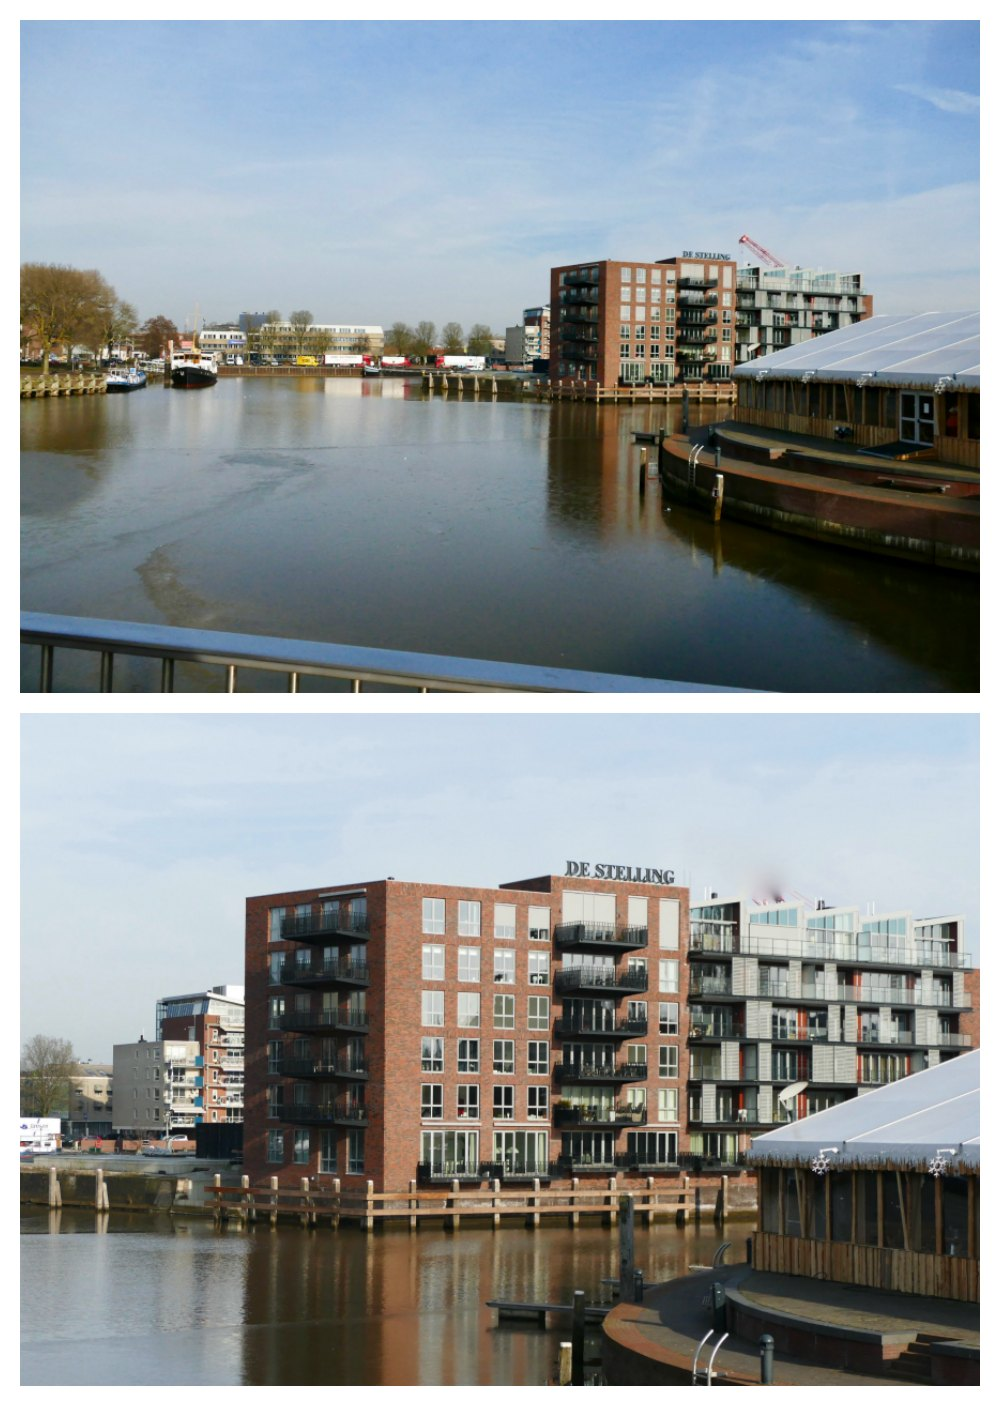 A wider part of Zwolle's canal |curlytraveller.com